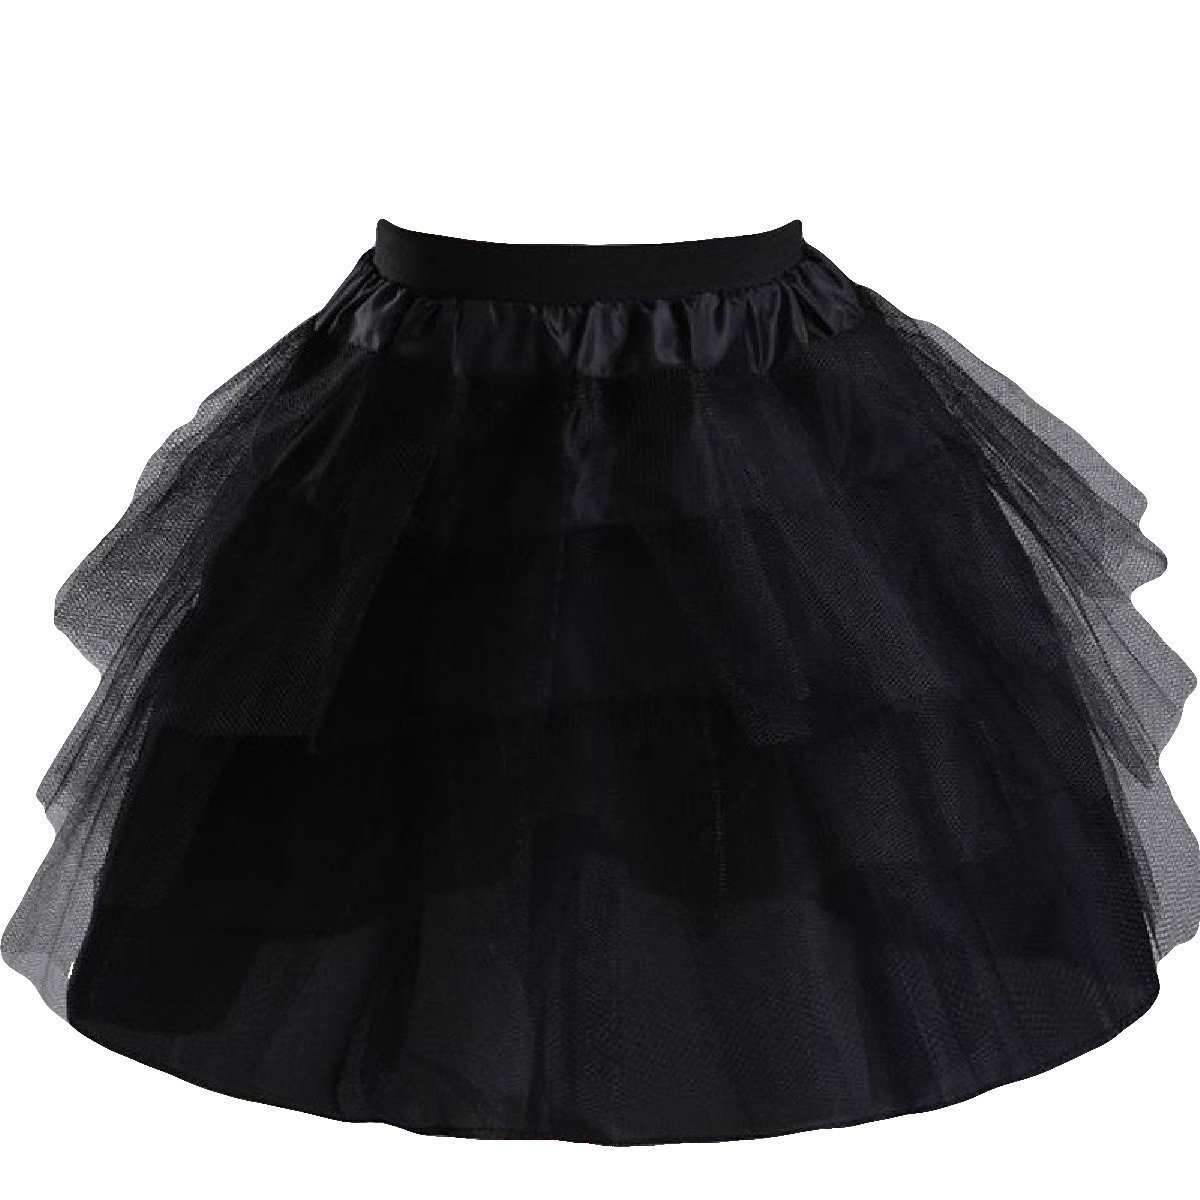 Manfei Girls 3 Layers Wedding Flower Girl Petticoat Slips Underskirt Black One Size